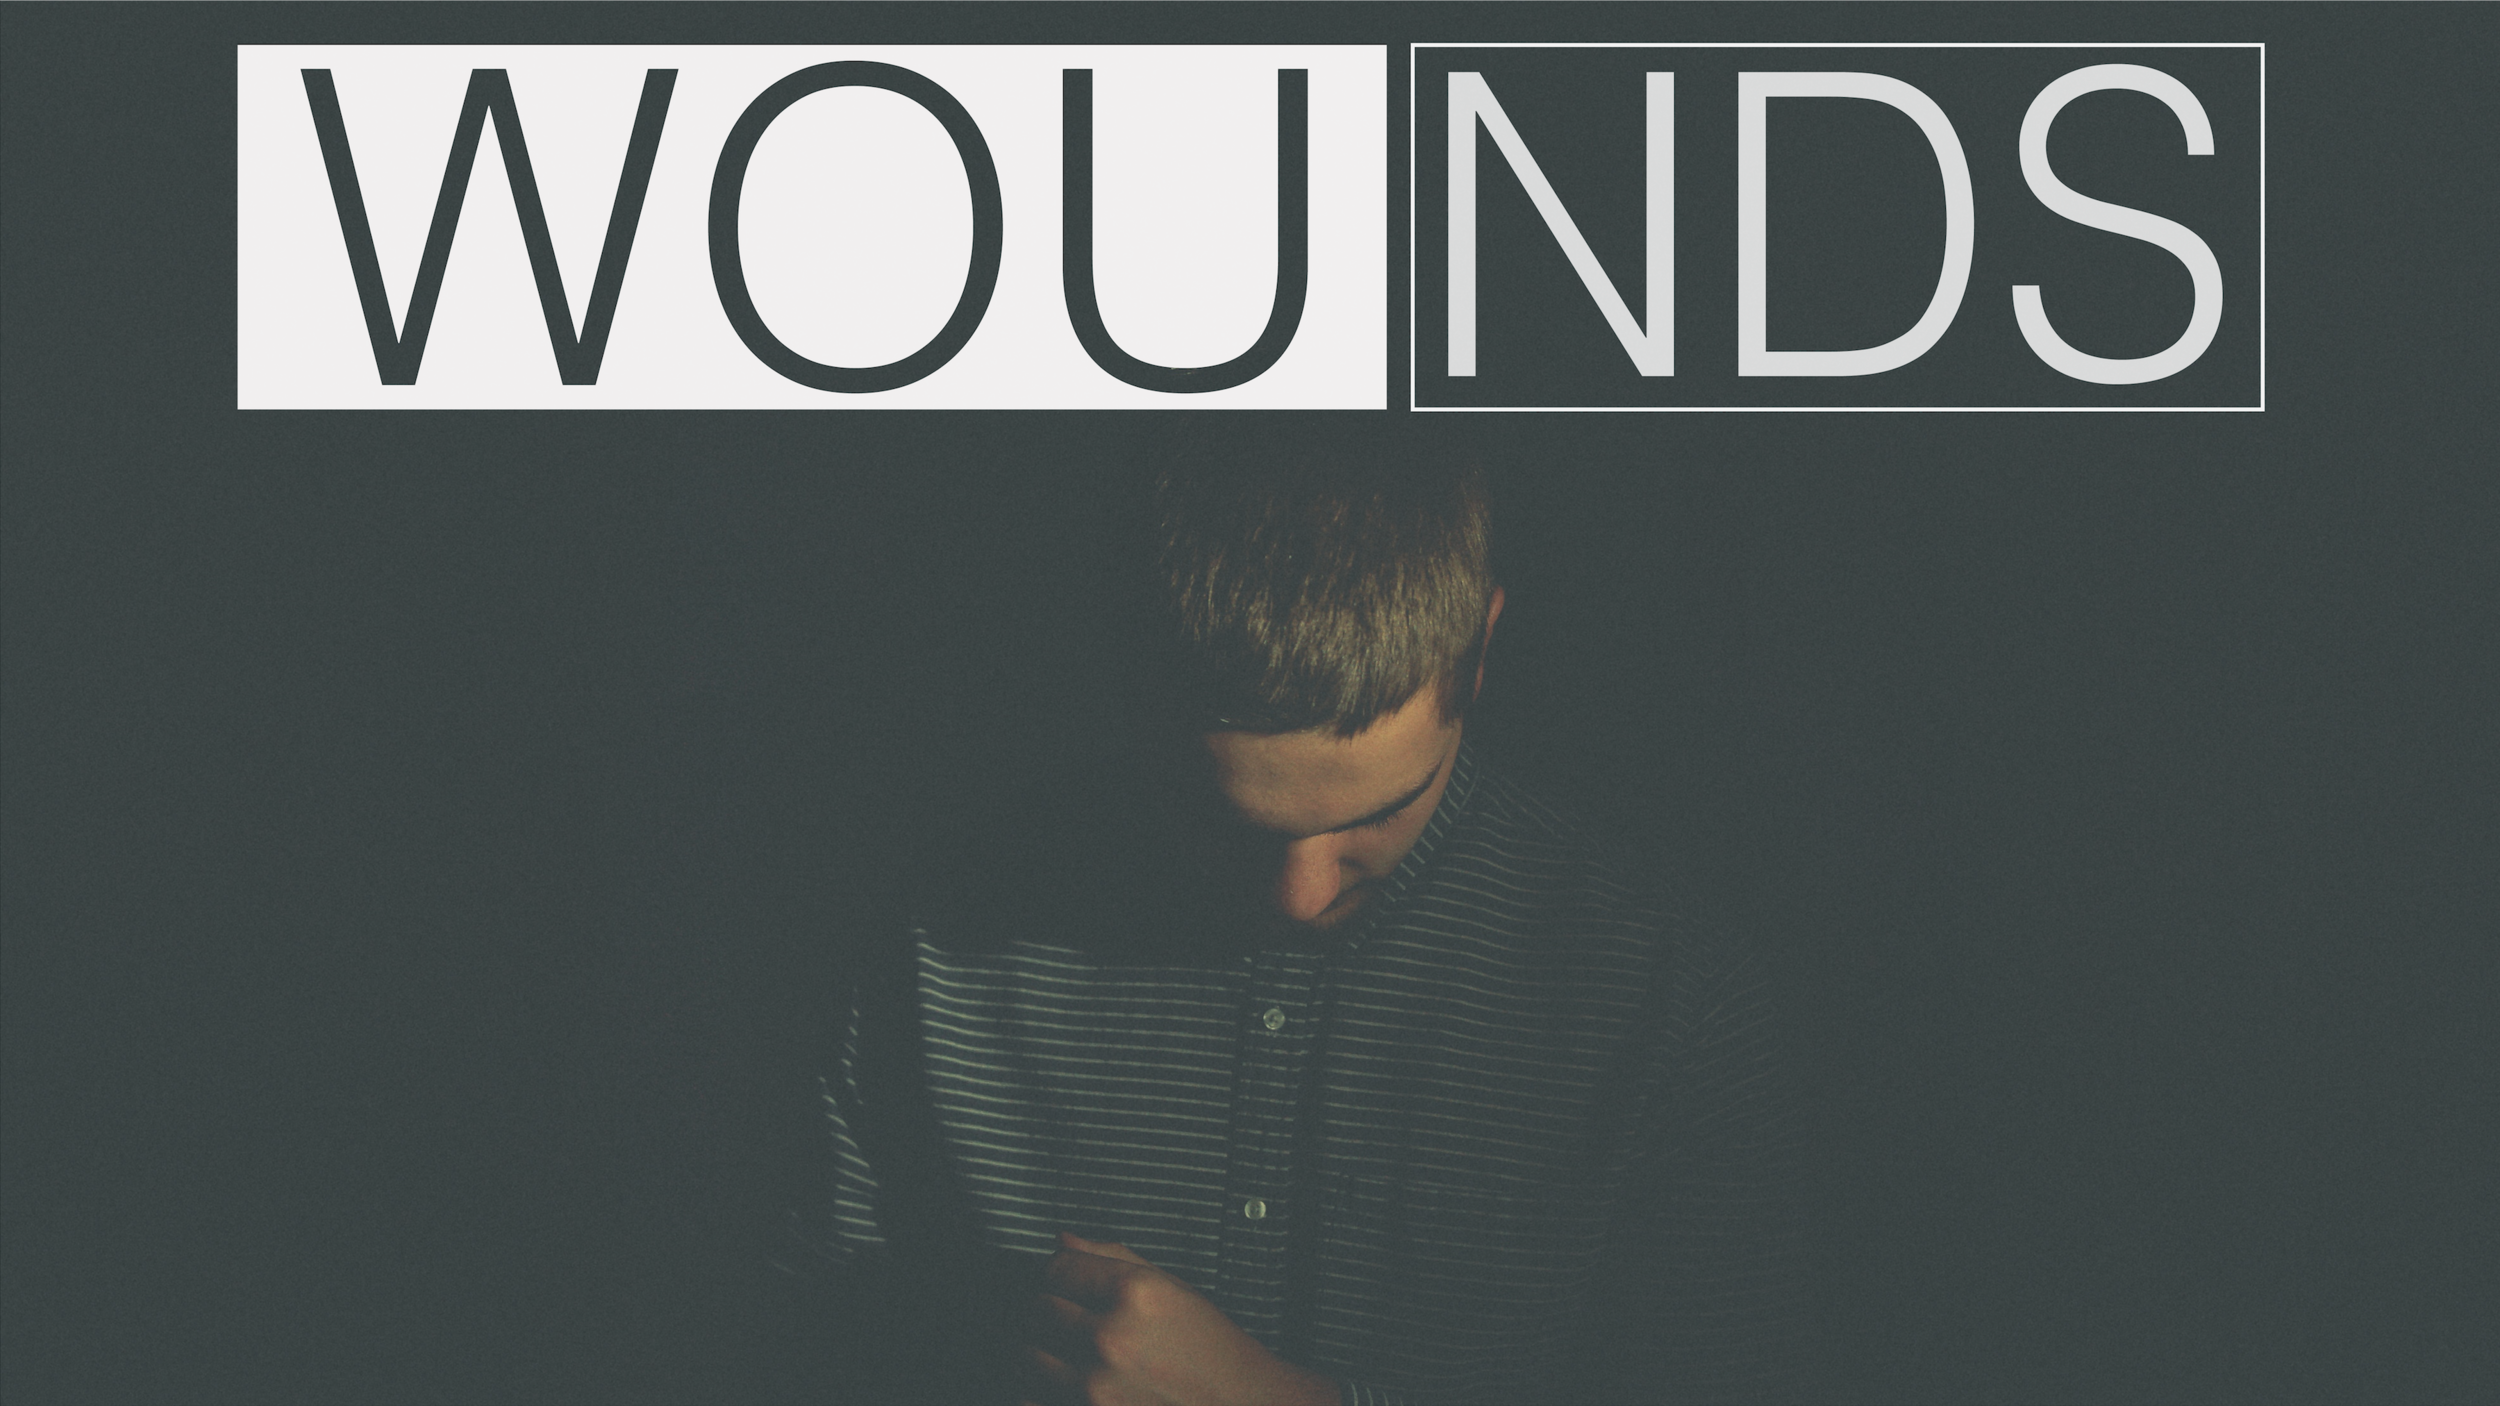 HCBCWounds2-03 copy.png